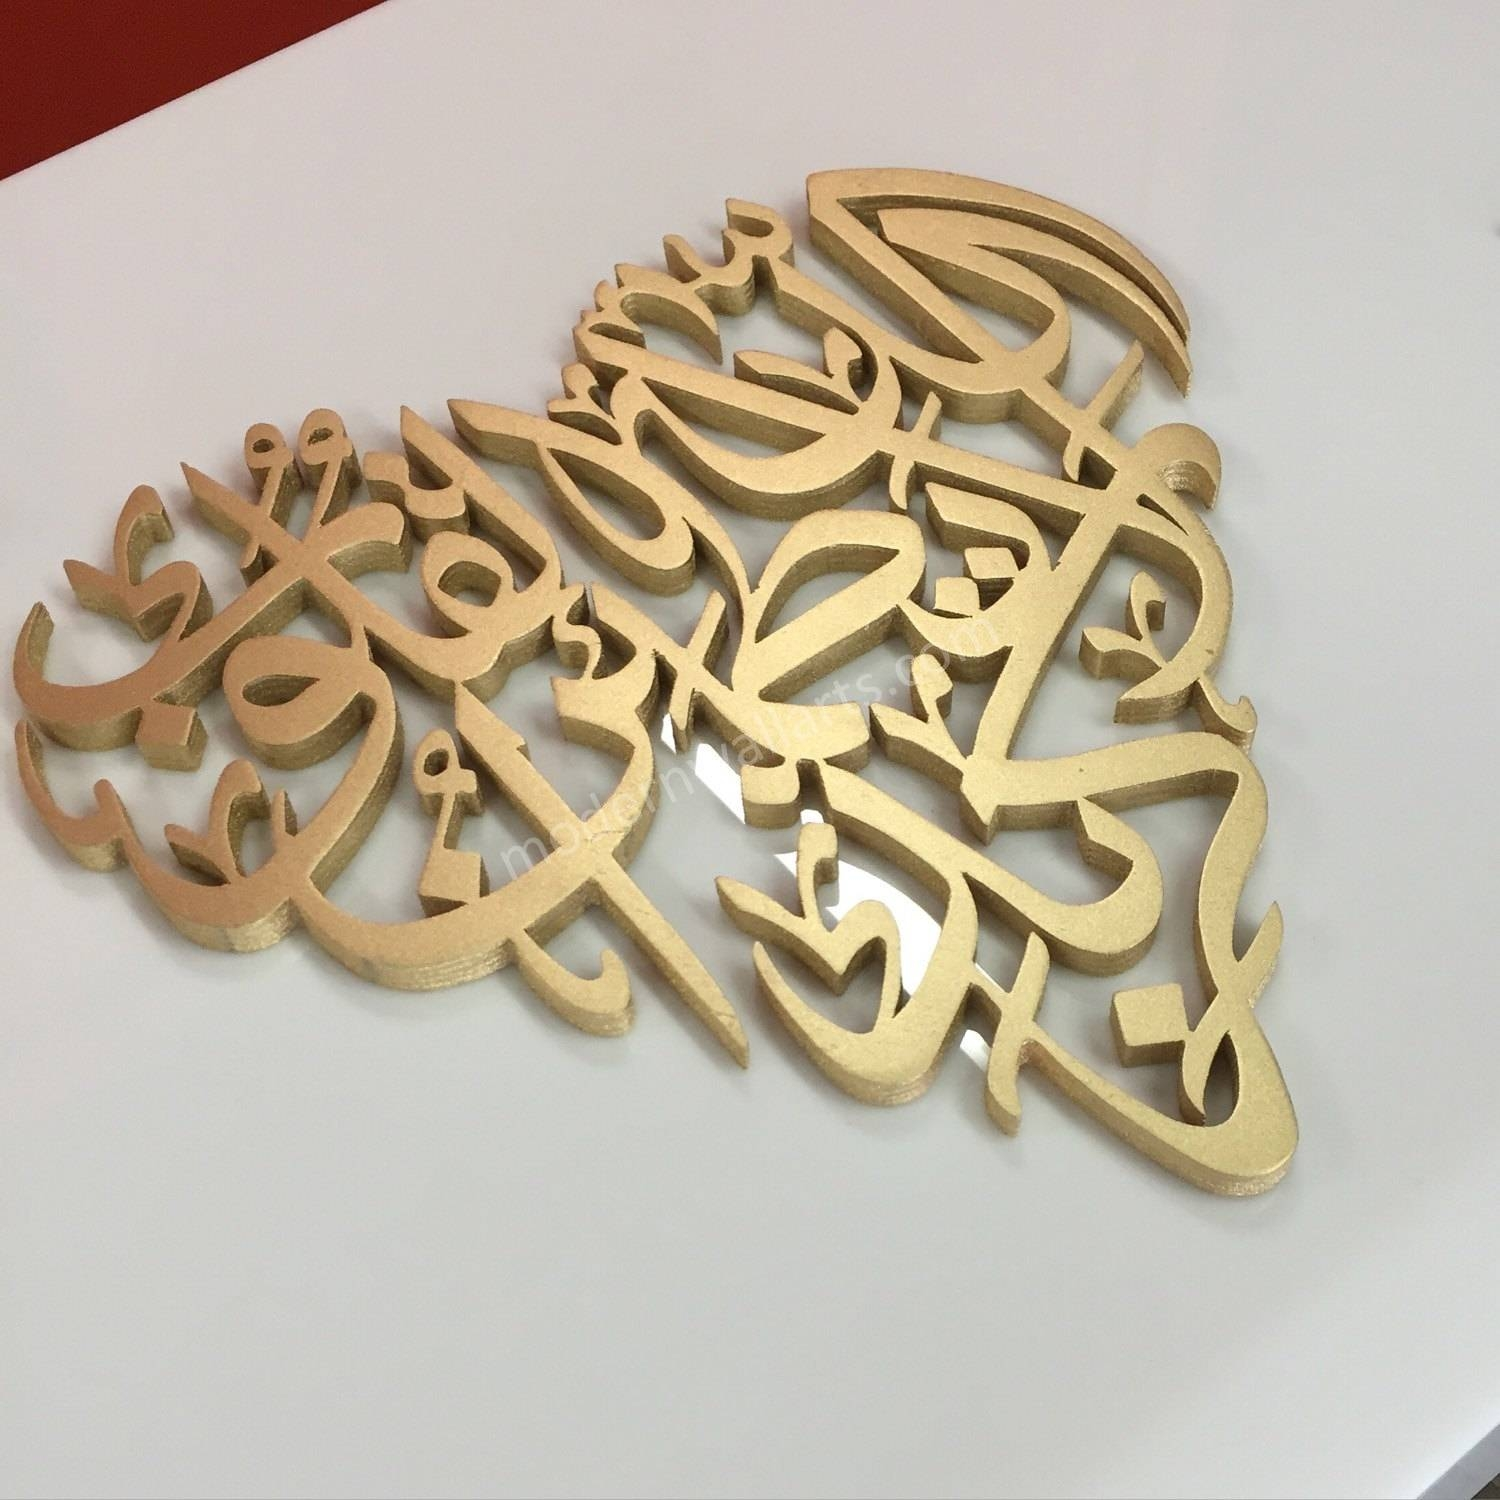 Islamic Heart Shape Table/wall Art – Modern Wall Arts For 2017 Islamic Metal Wall Art (View 7 of 20)